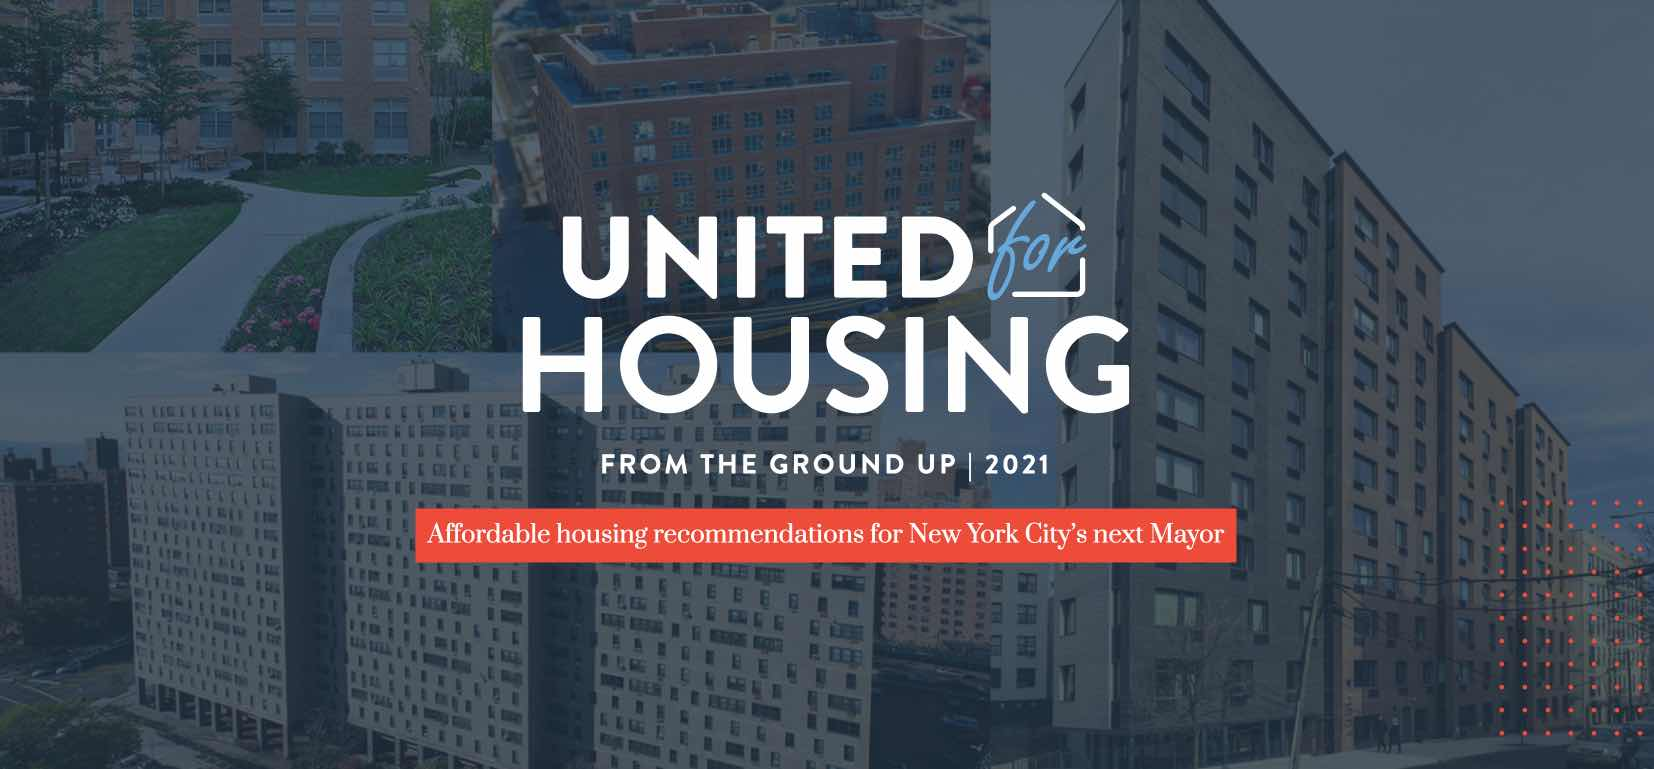 Sign up for United for Housing from the group up 2021